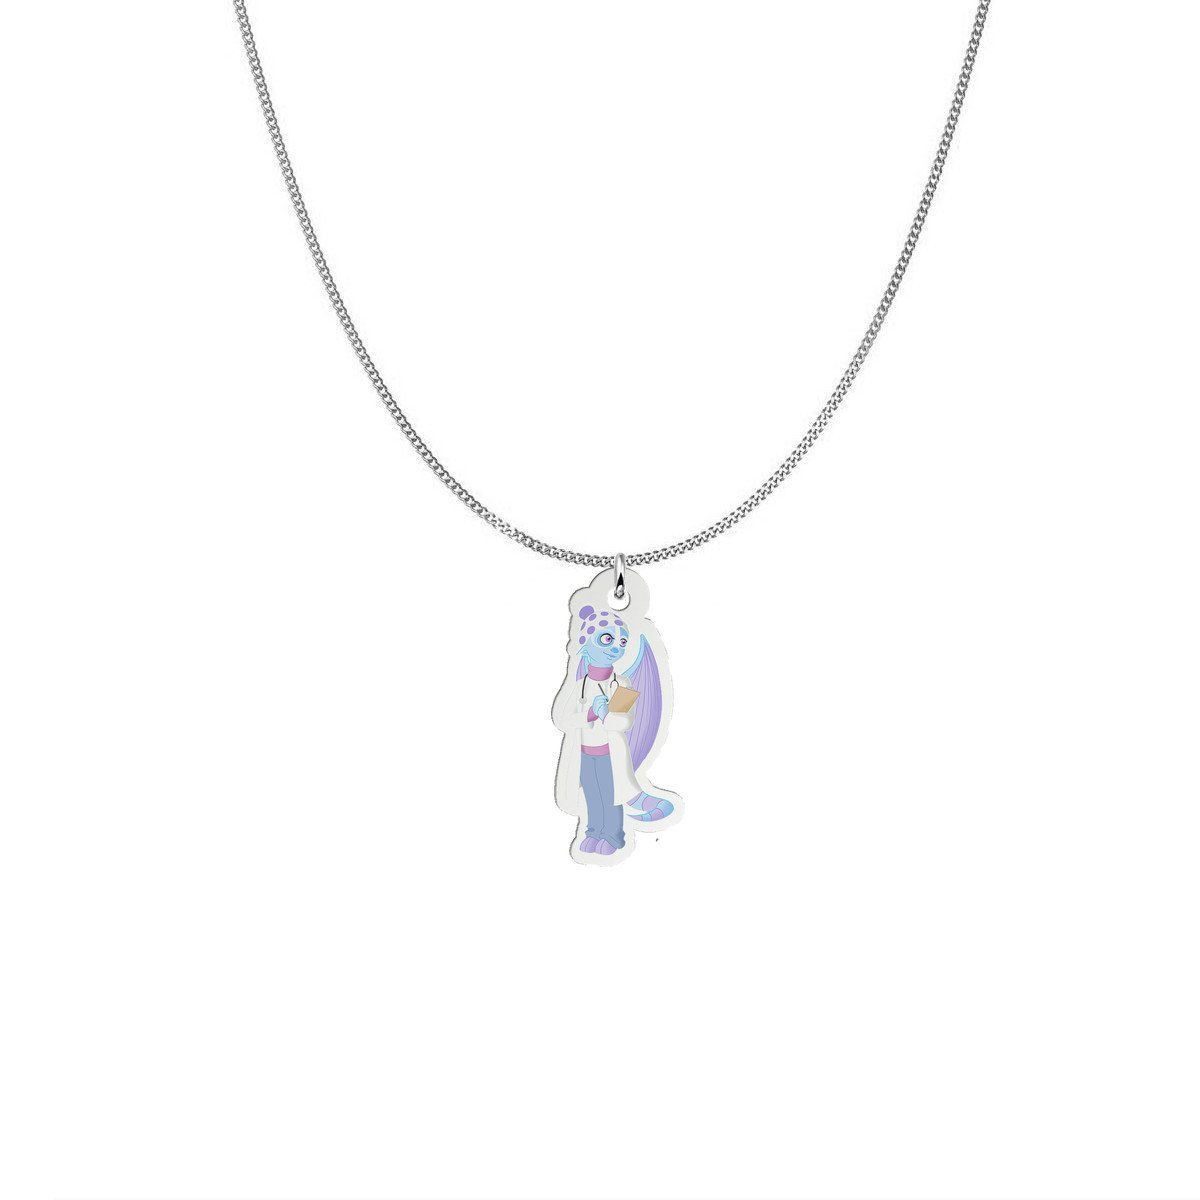 Pendant - Dr. Fria The Cold Urticaria Monster Silver Necklace